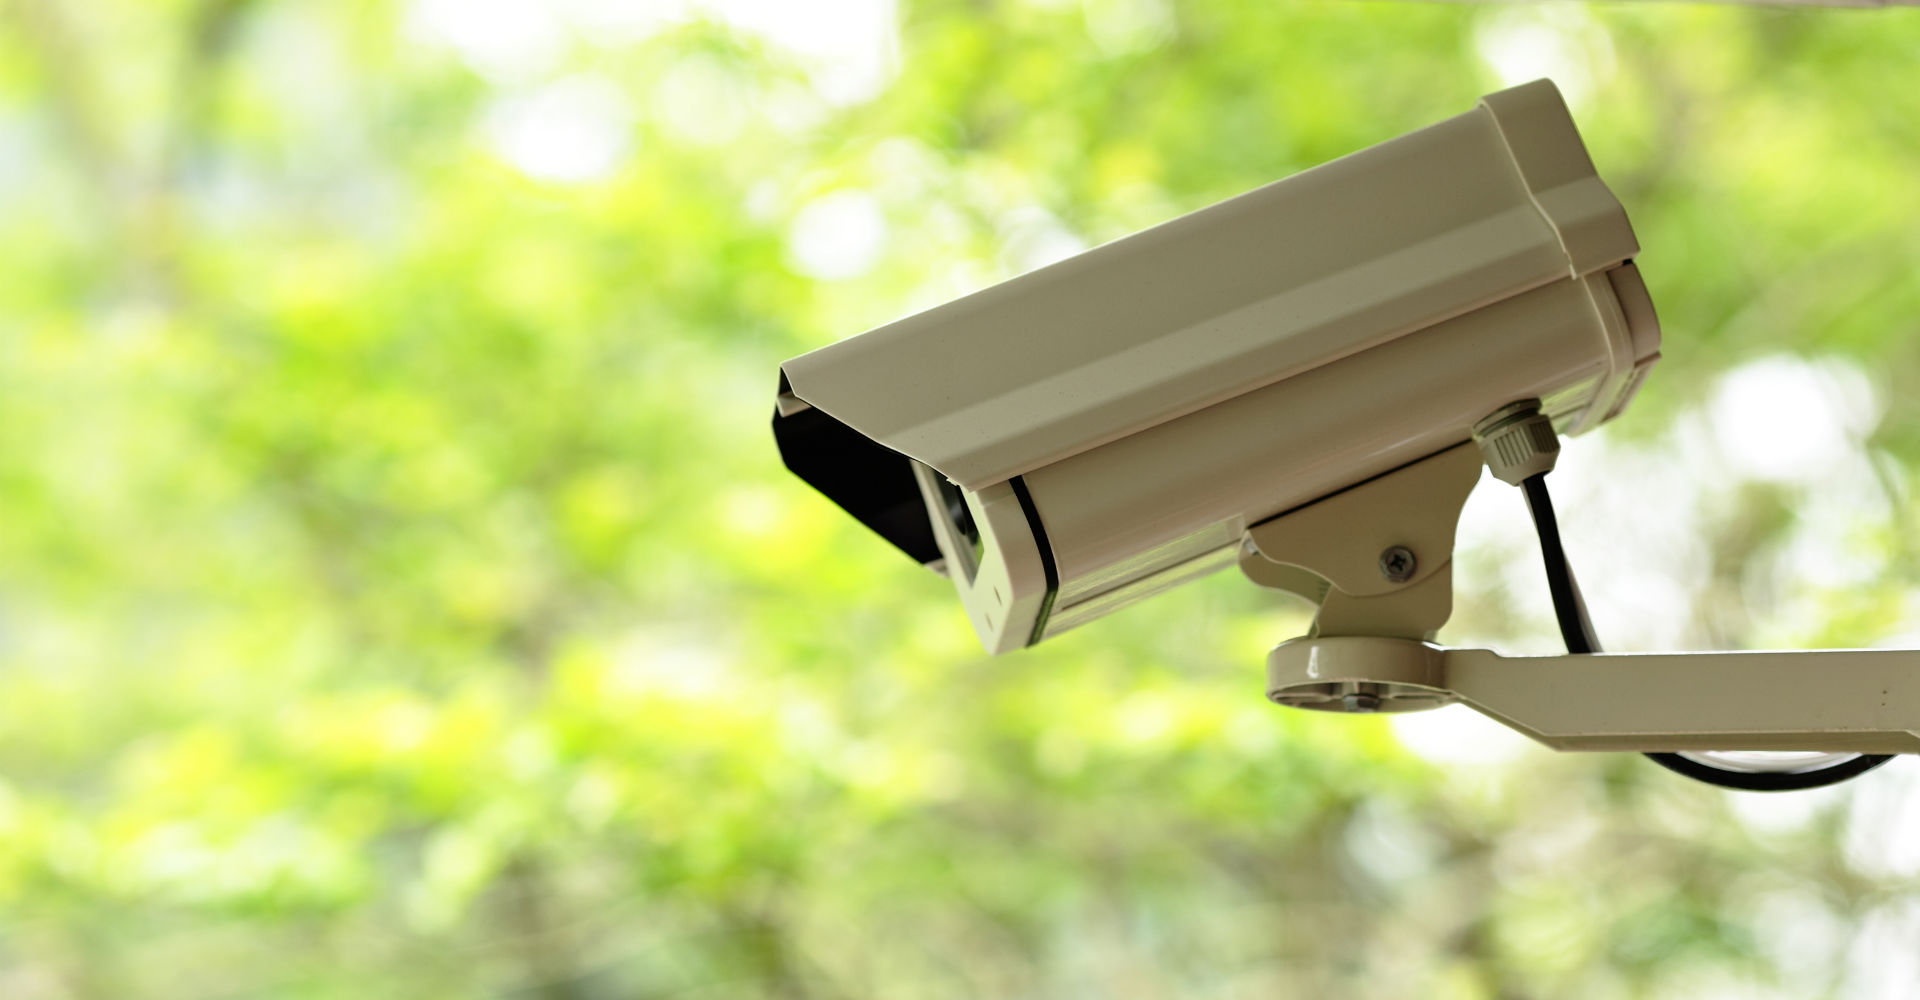 CCTV Systems and Security Cameras in Toronto